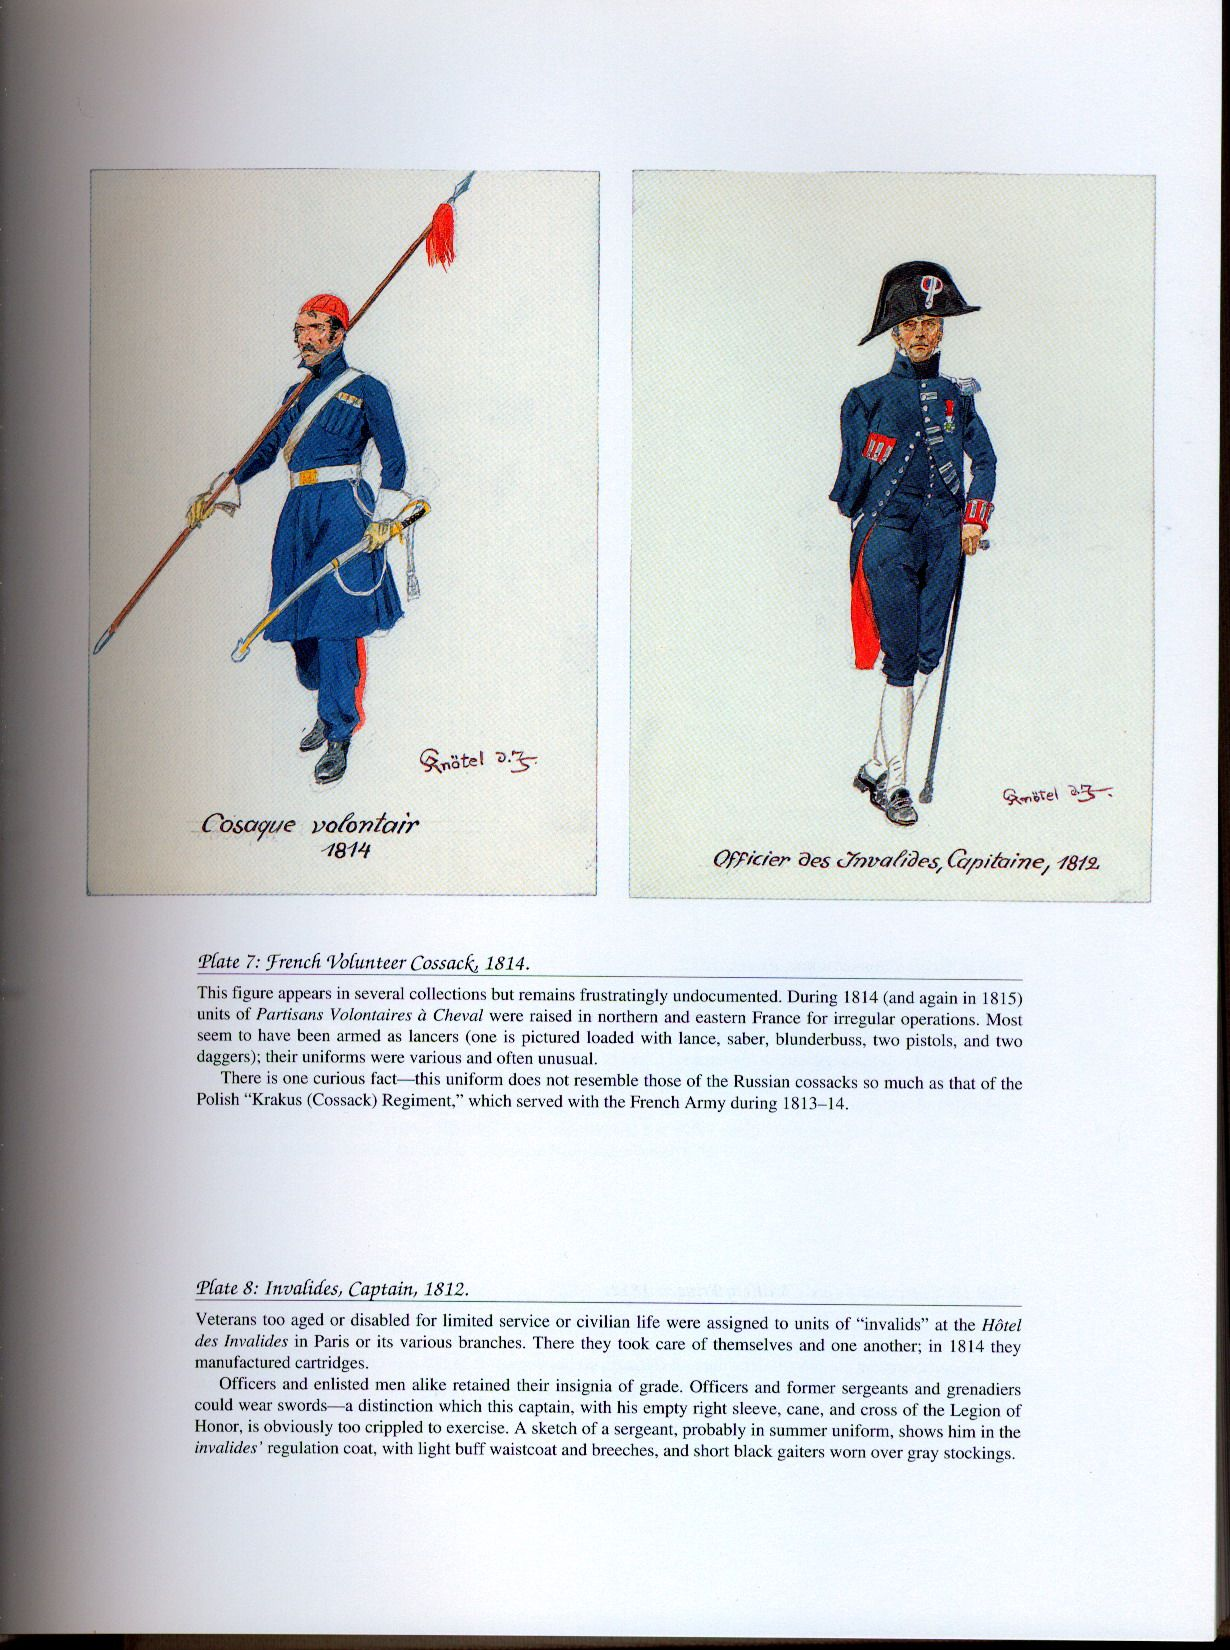 National Guard, Schools, Guards of Honor: Plate 7: French Volunteer Cossack, 1814. + Plate 8: Invalides, Captain, 1812.